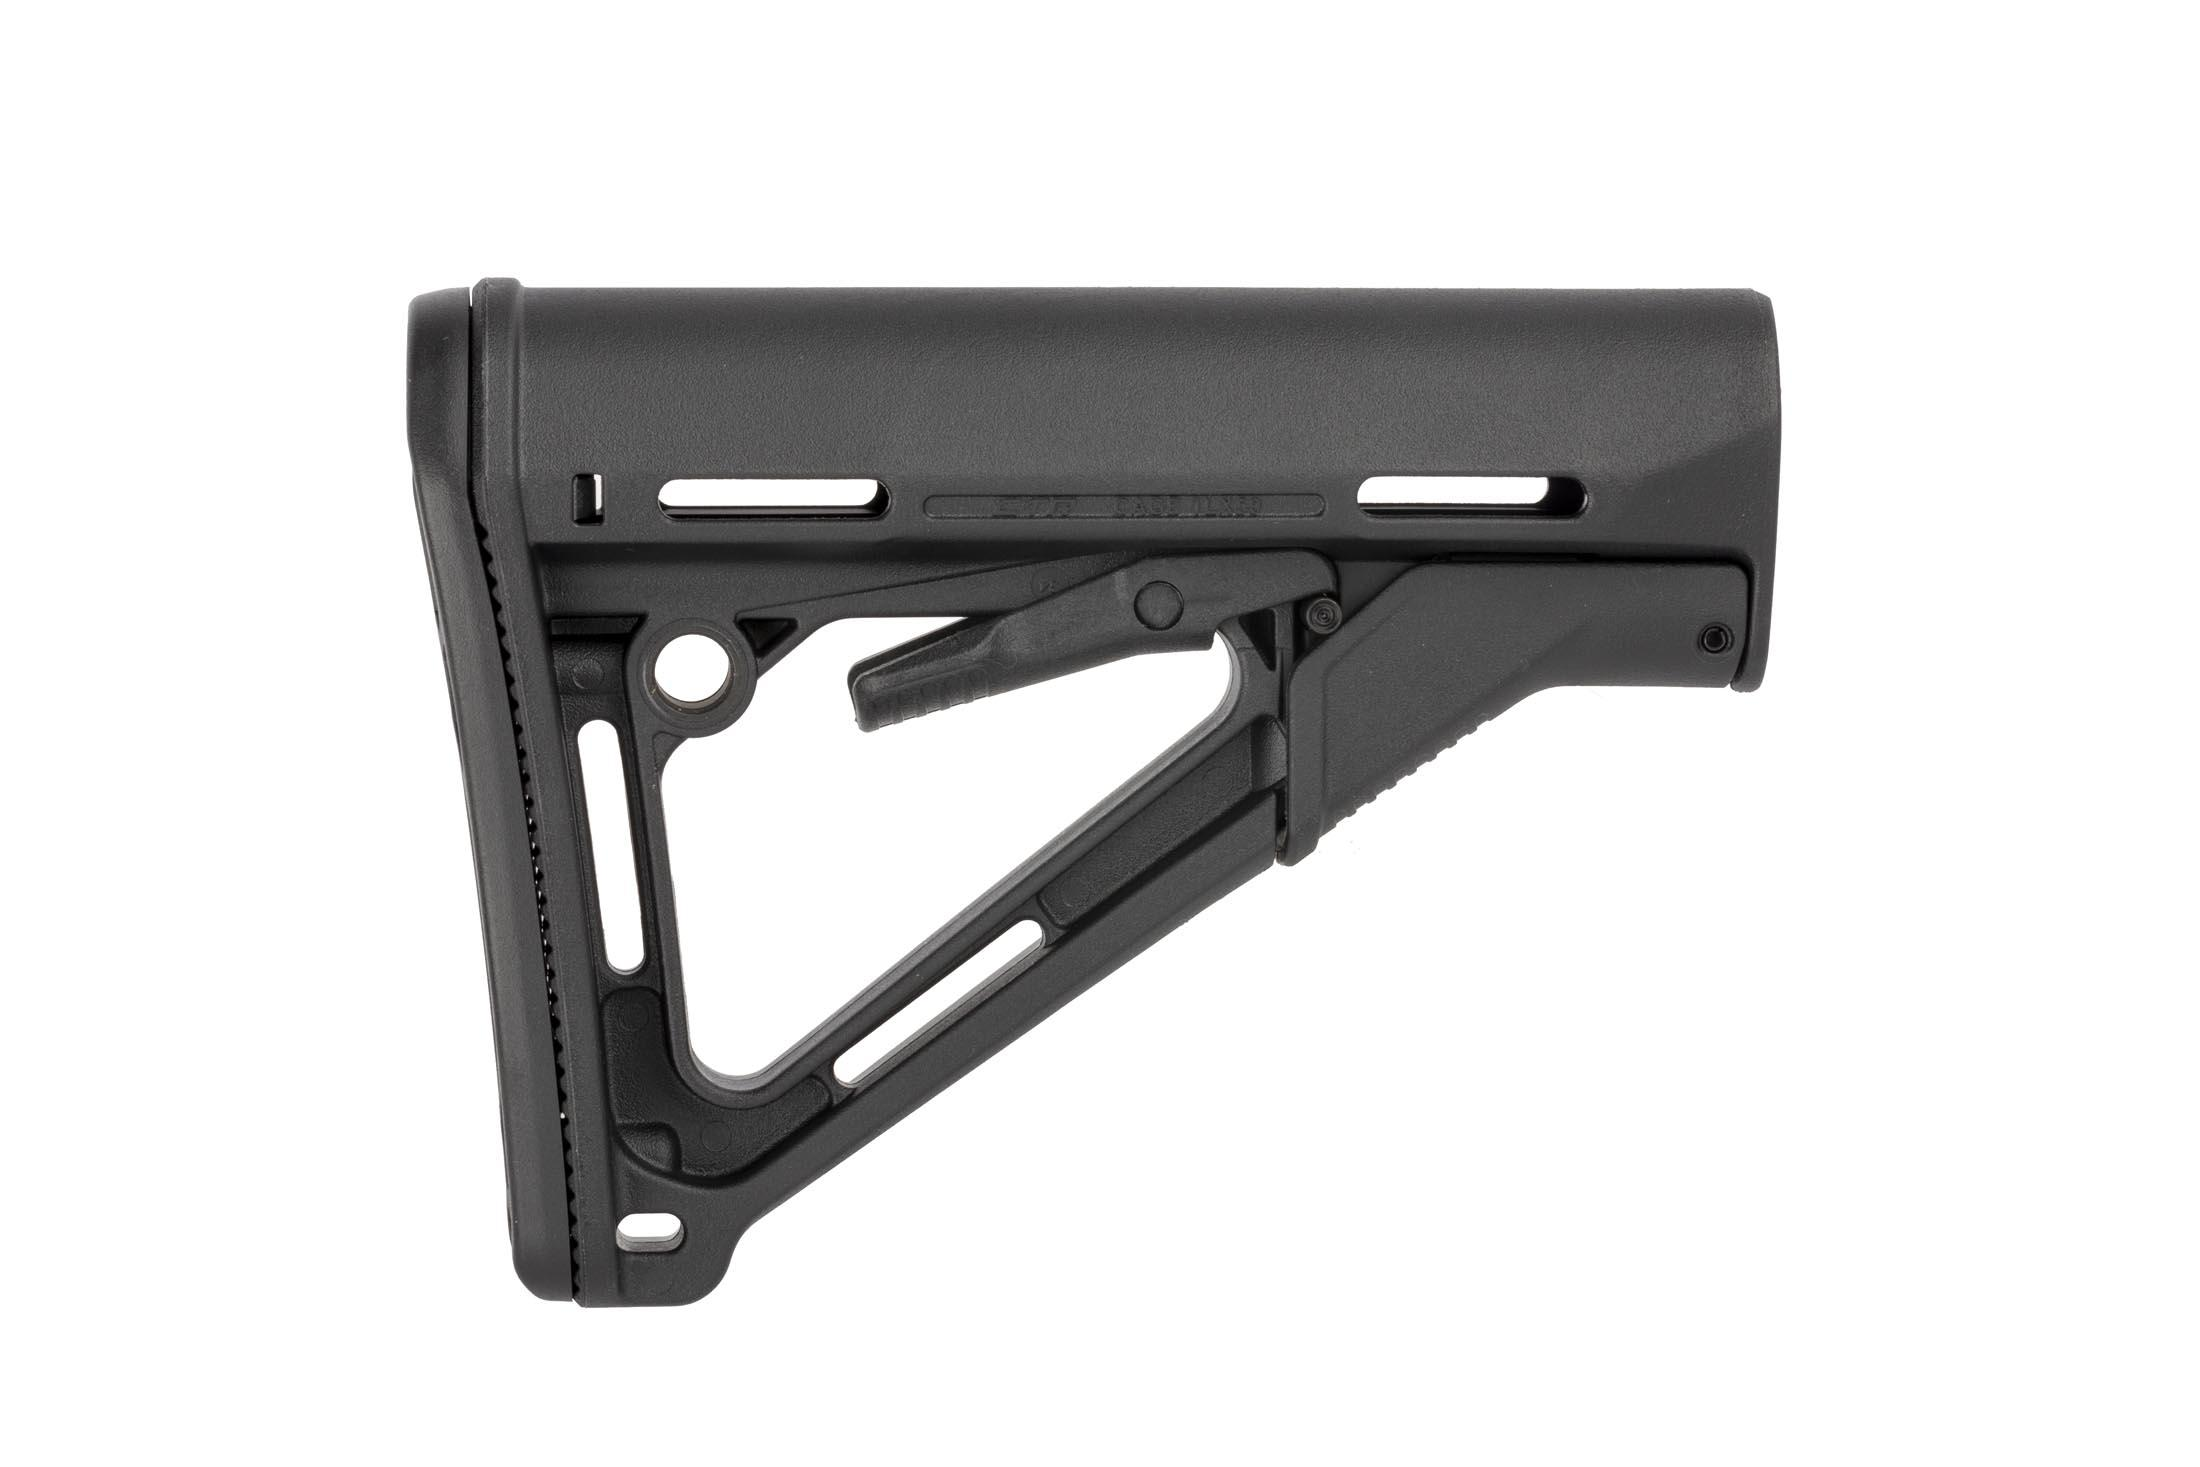 Magpul CTR Carbine Stock - MIL-SPEC - Black